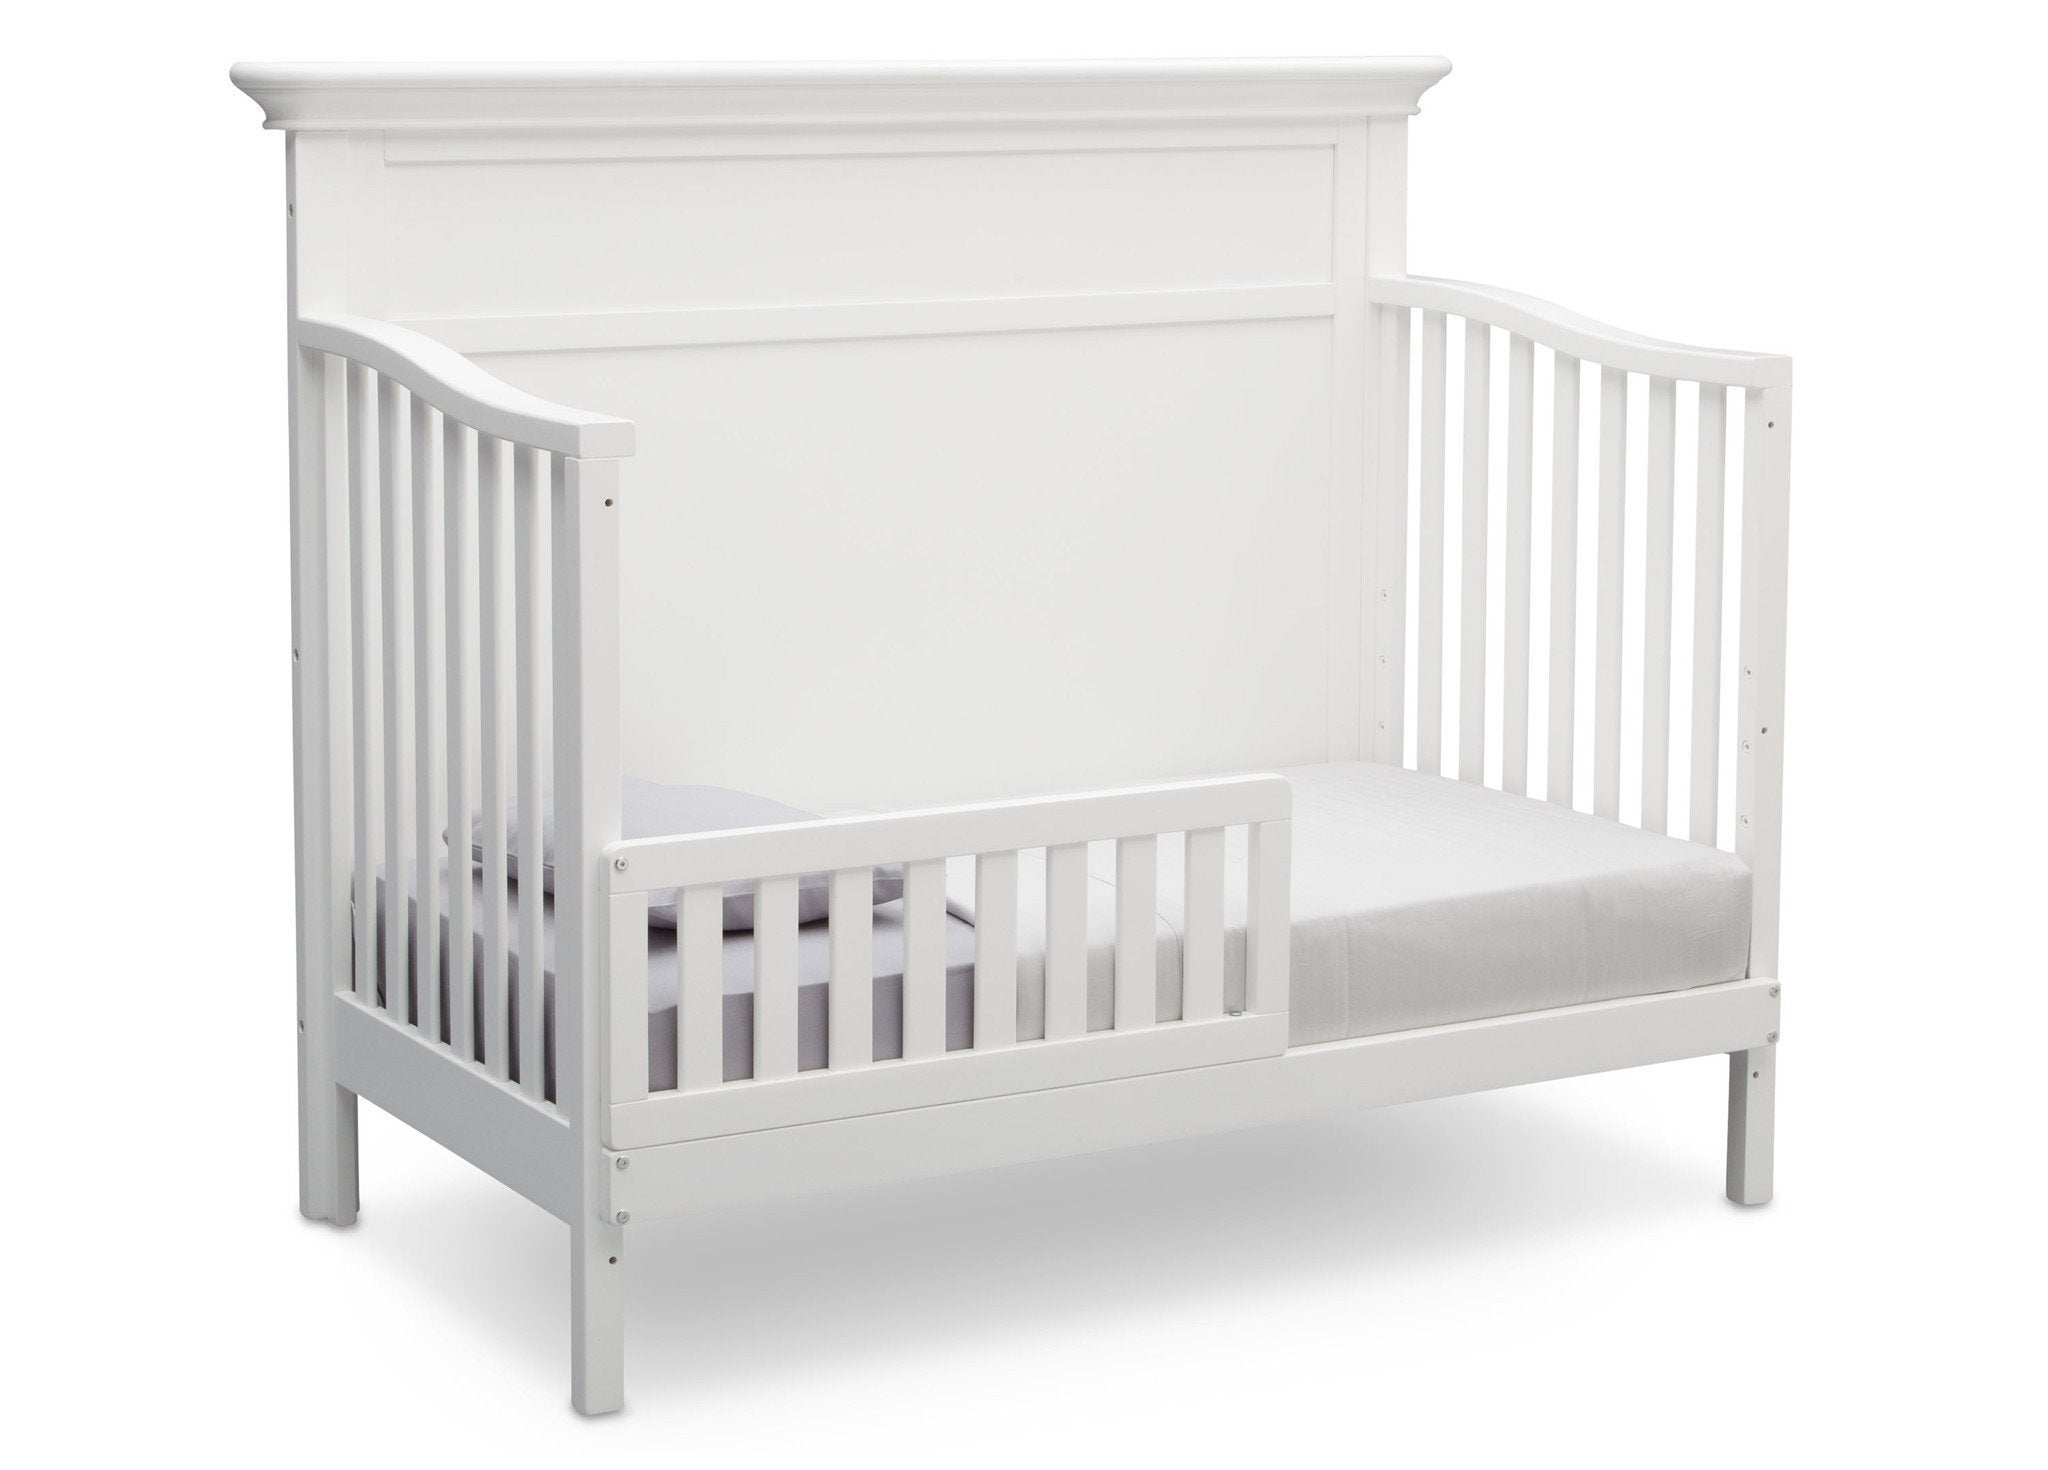 Serta Bianca White (130) Fairmount 4-in-1 Crib, Side View with Toddler Bed Conversion a5a